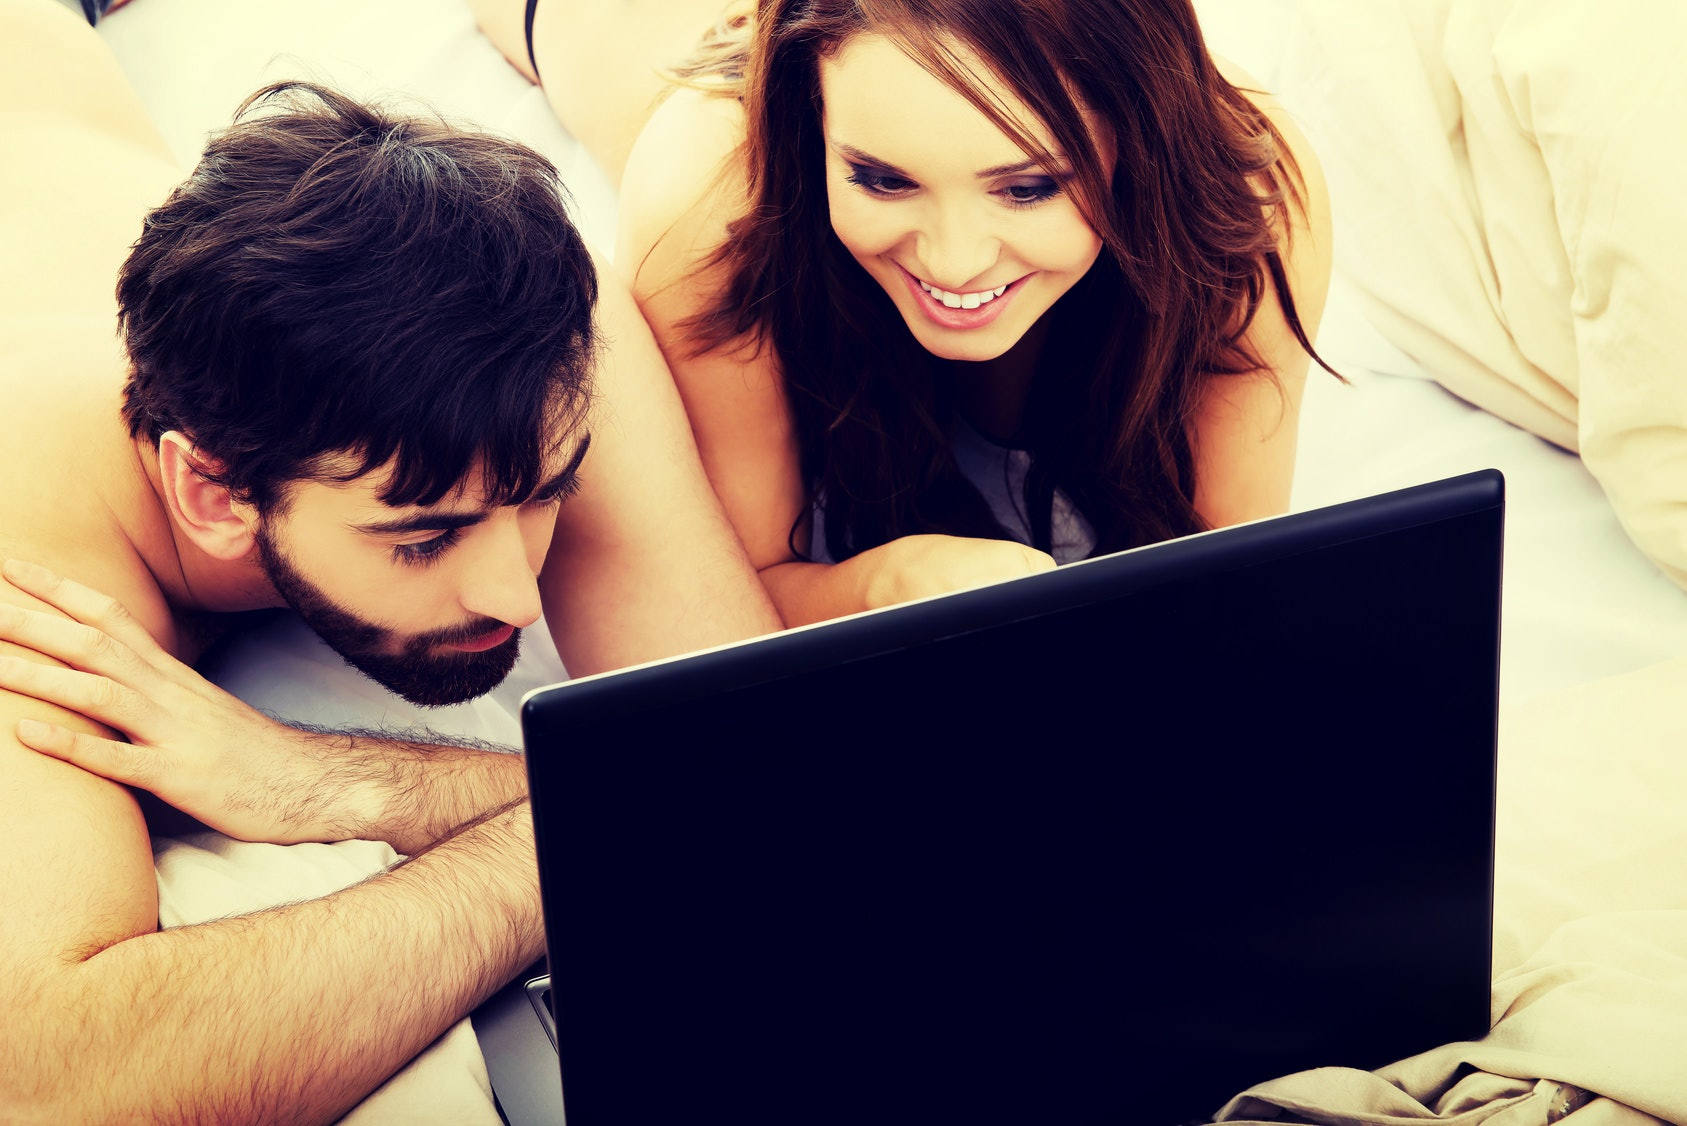 Adult cyber chat rooms